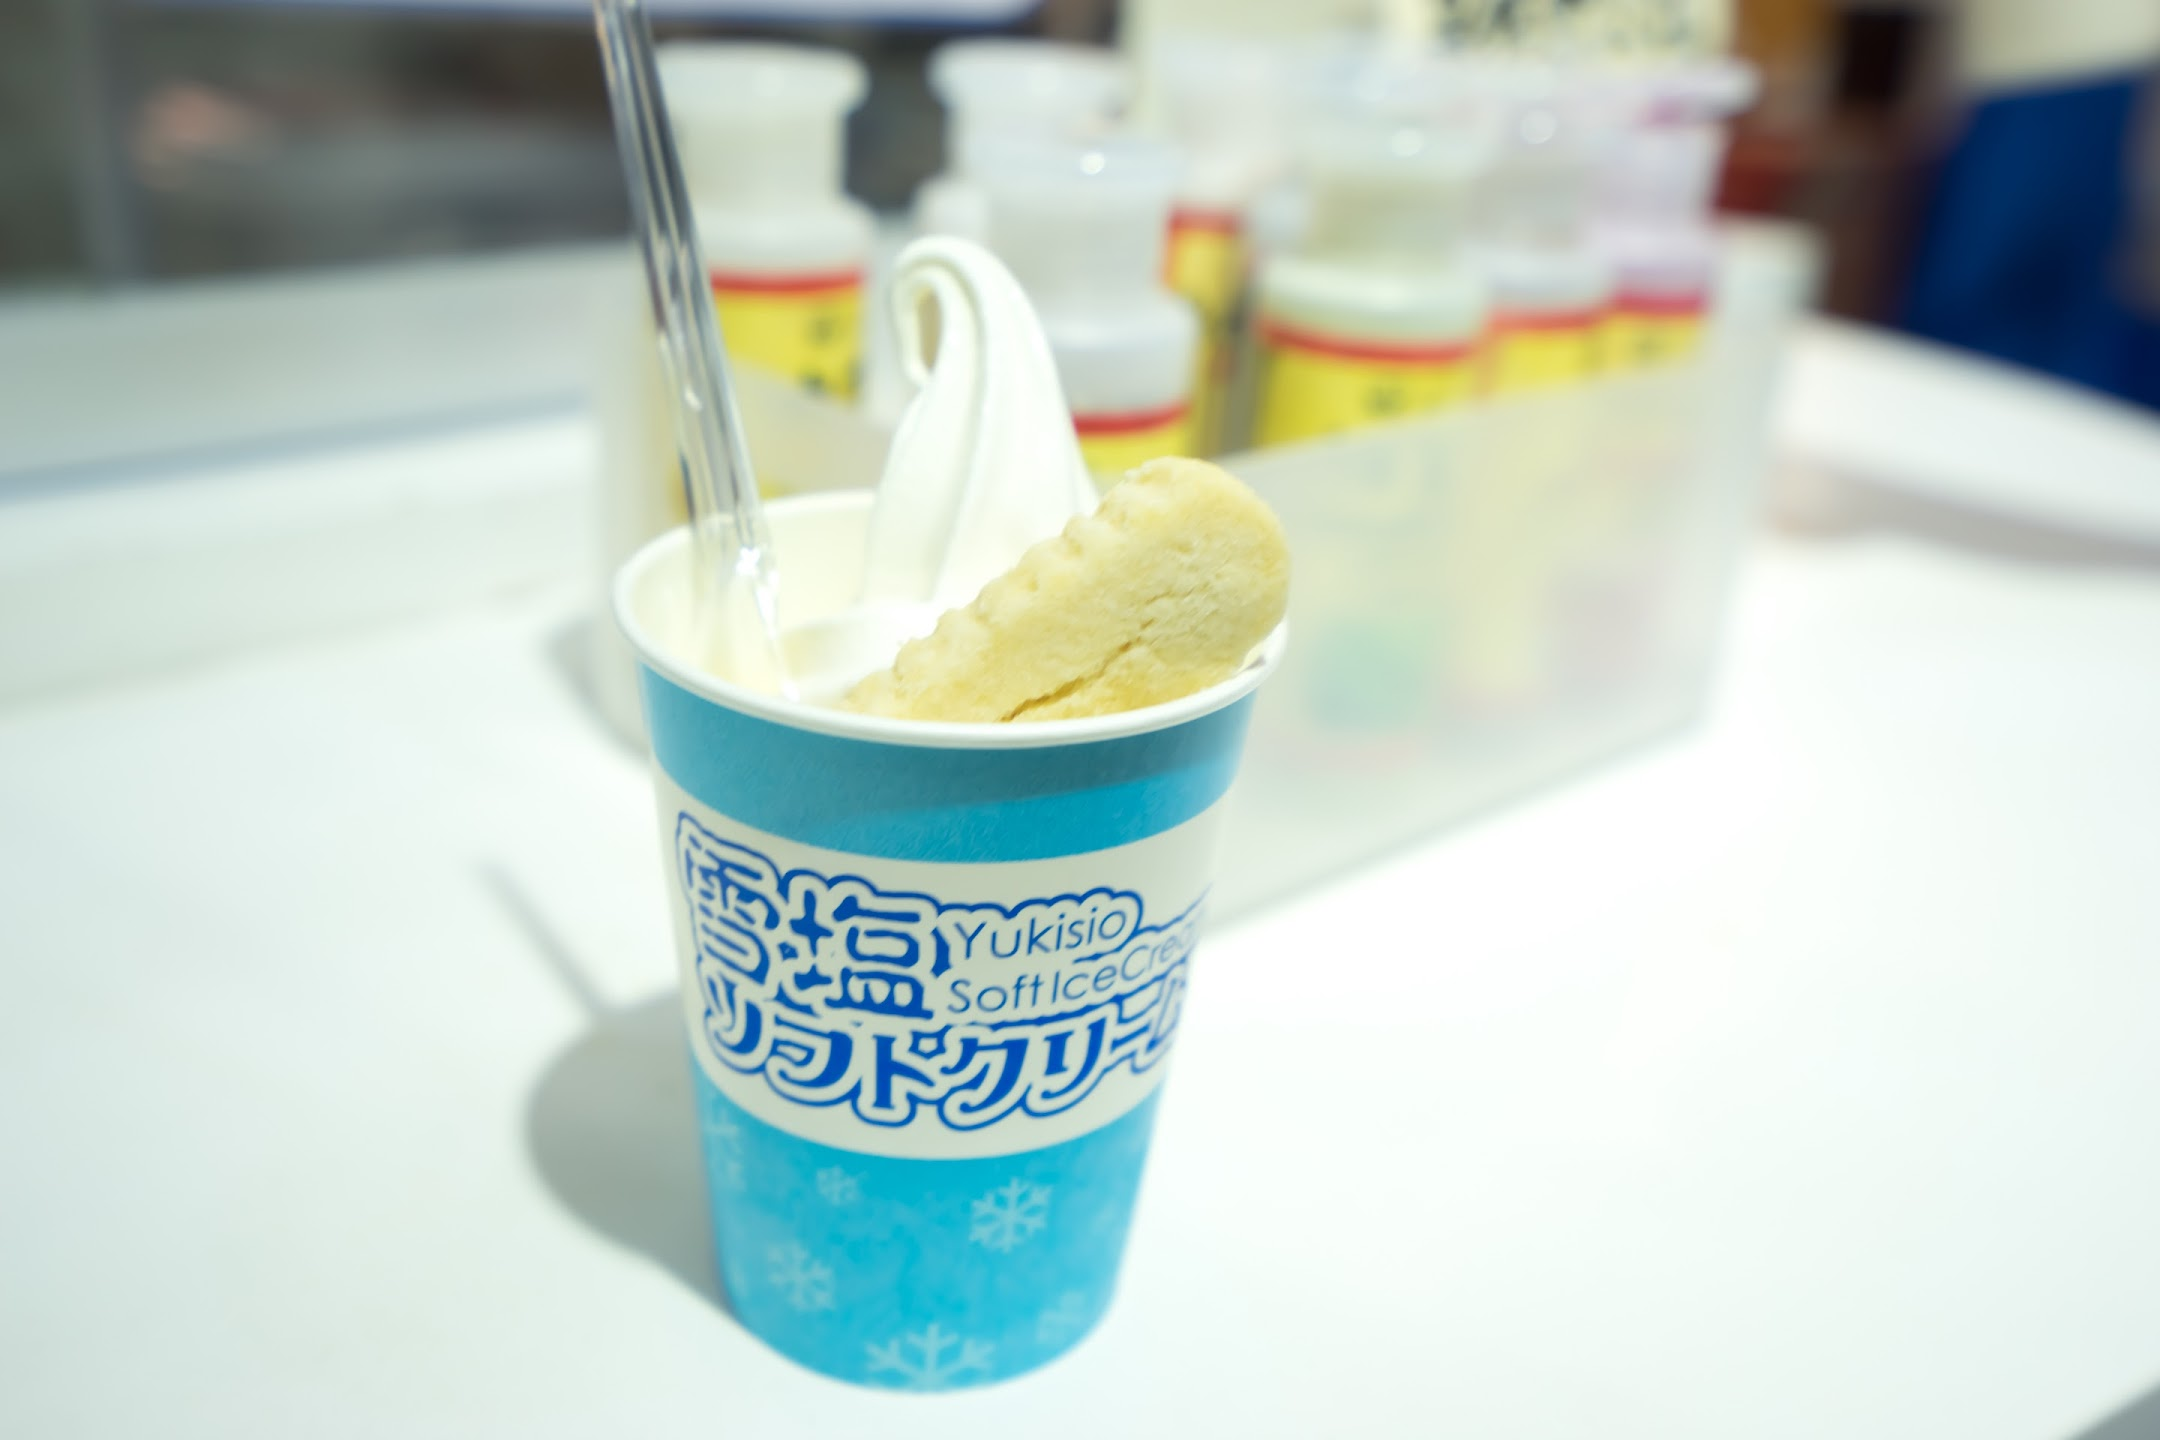 Yukisio Salt Ice Cream